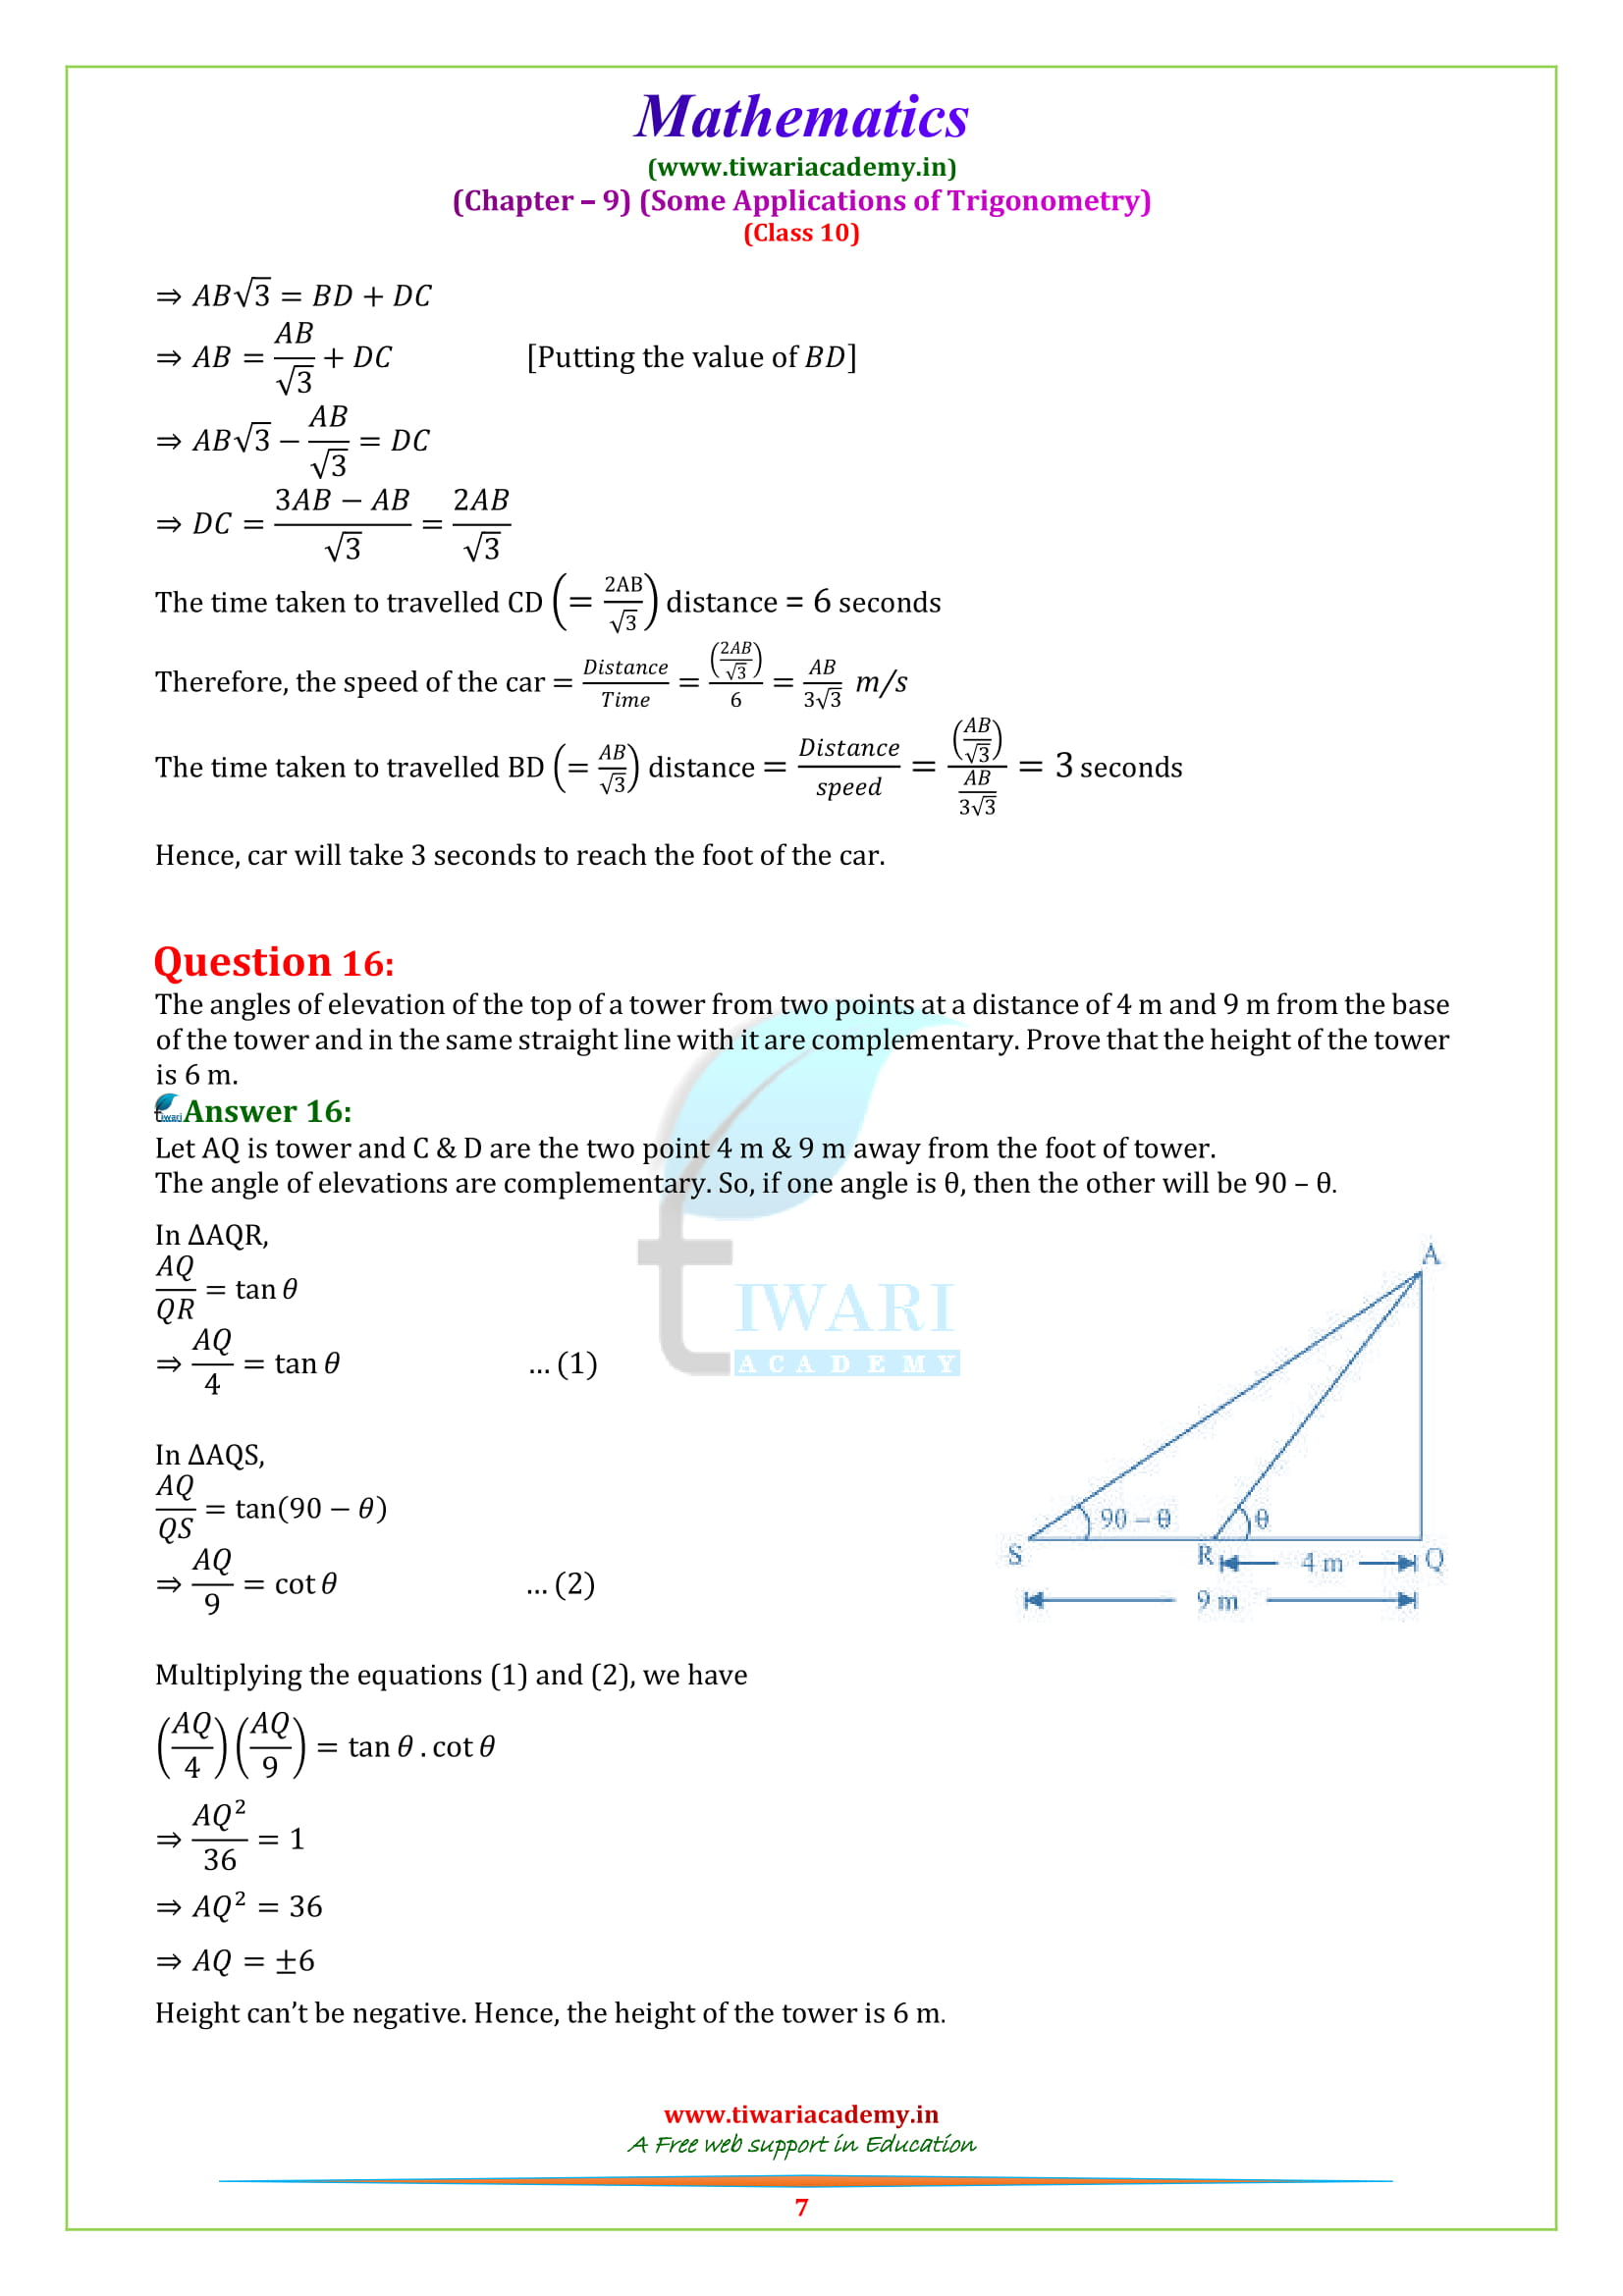 Class 10 Maths exercise 9.1 question 16 solutions in english